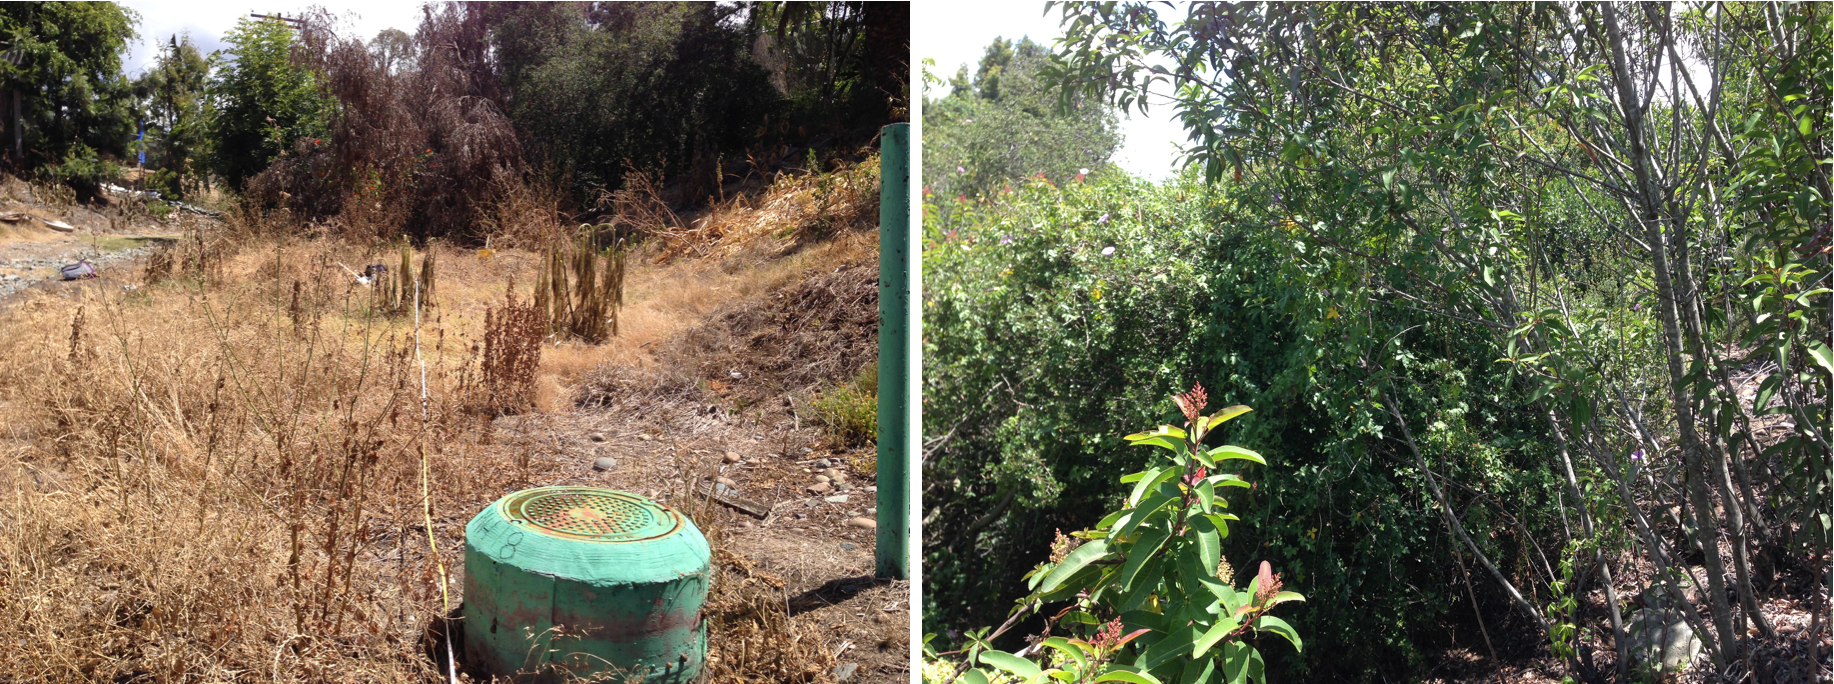 Fig. 3. Paired restoration (L) and reference (R) plots facing upstream in Manzanita Canyon in 2016. Note the dominance of invasive annual plants and disturbed ground in the restoration plot compared to the native woody perennial community in the reference plot.